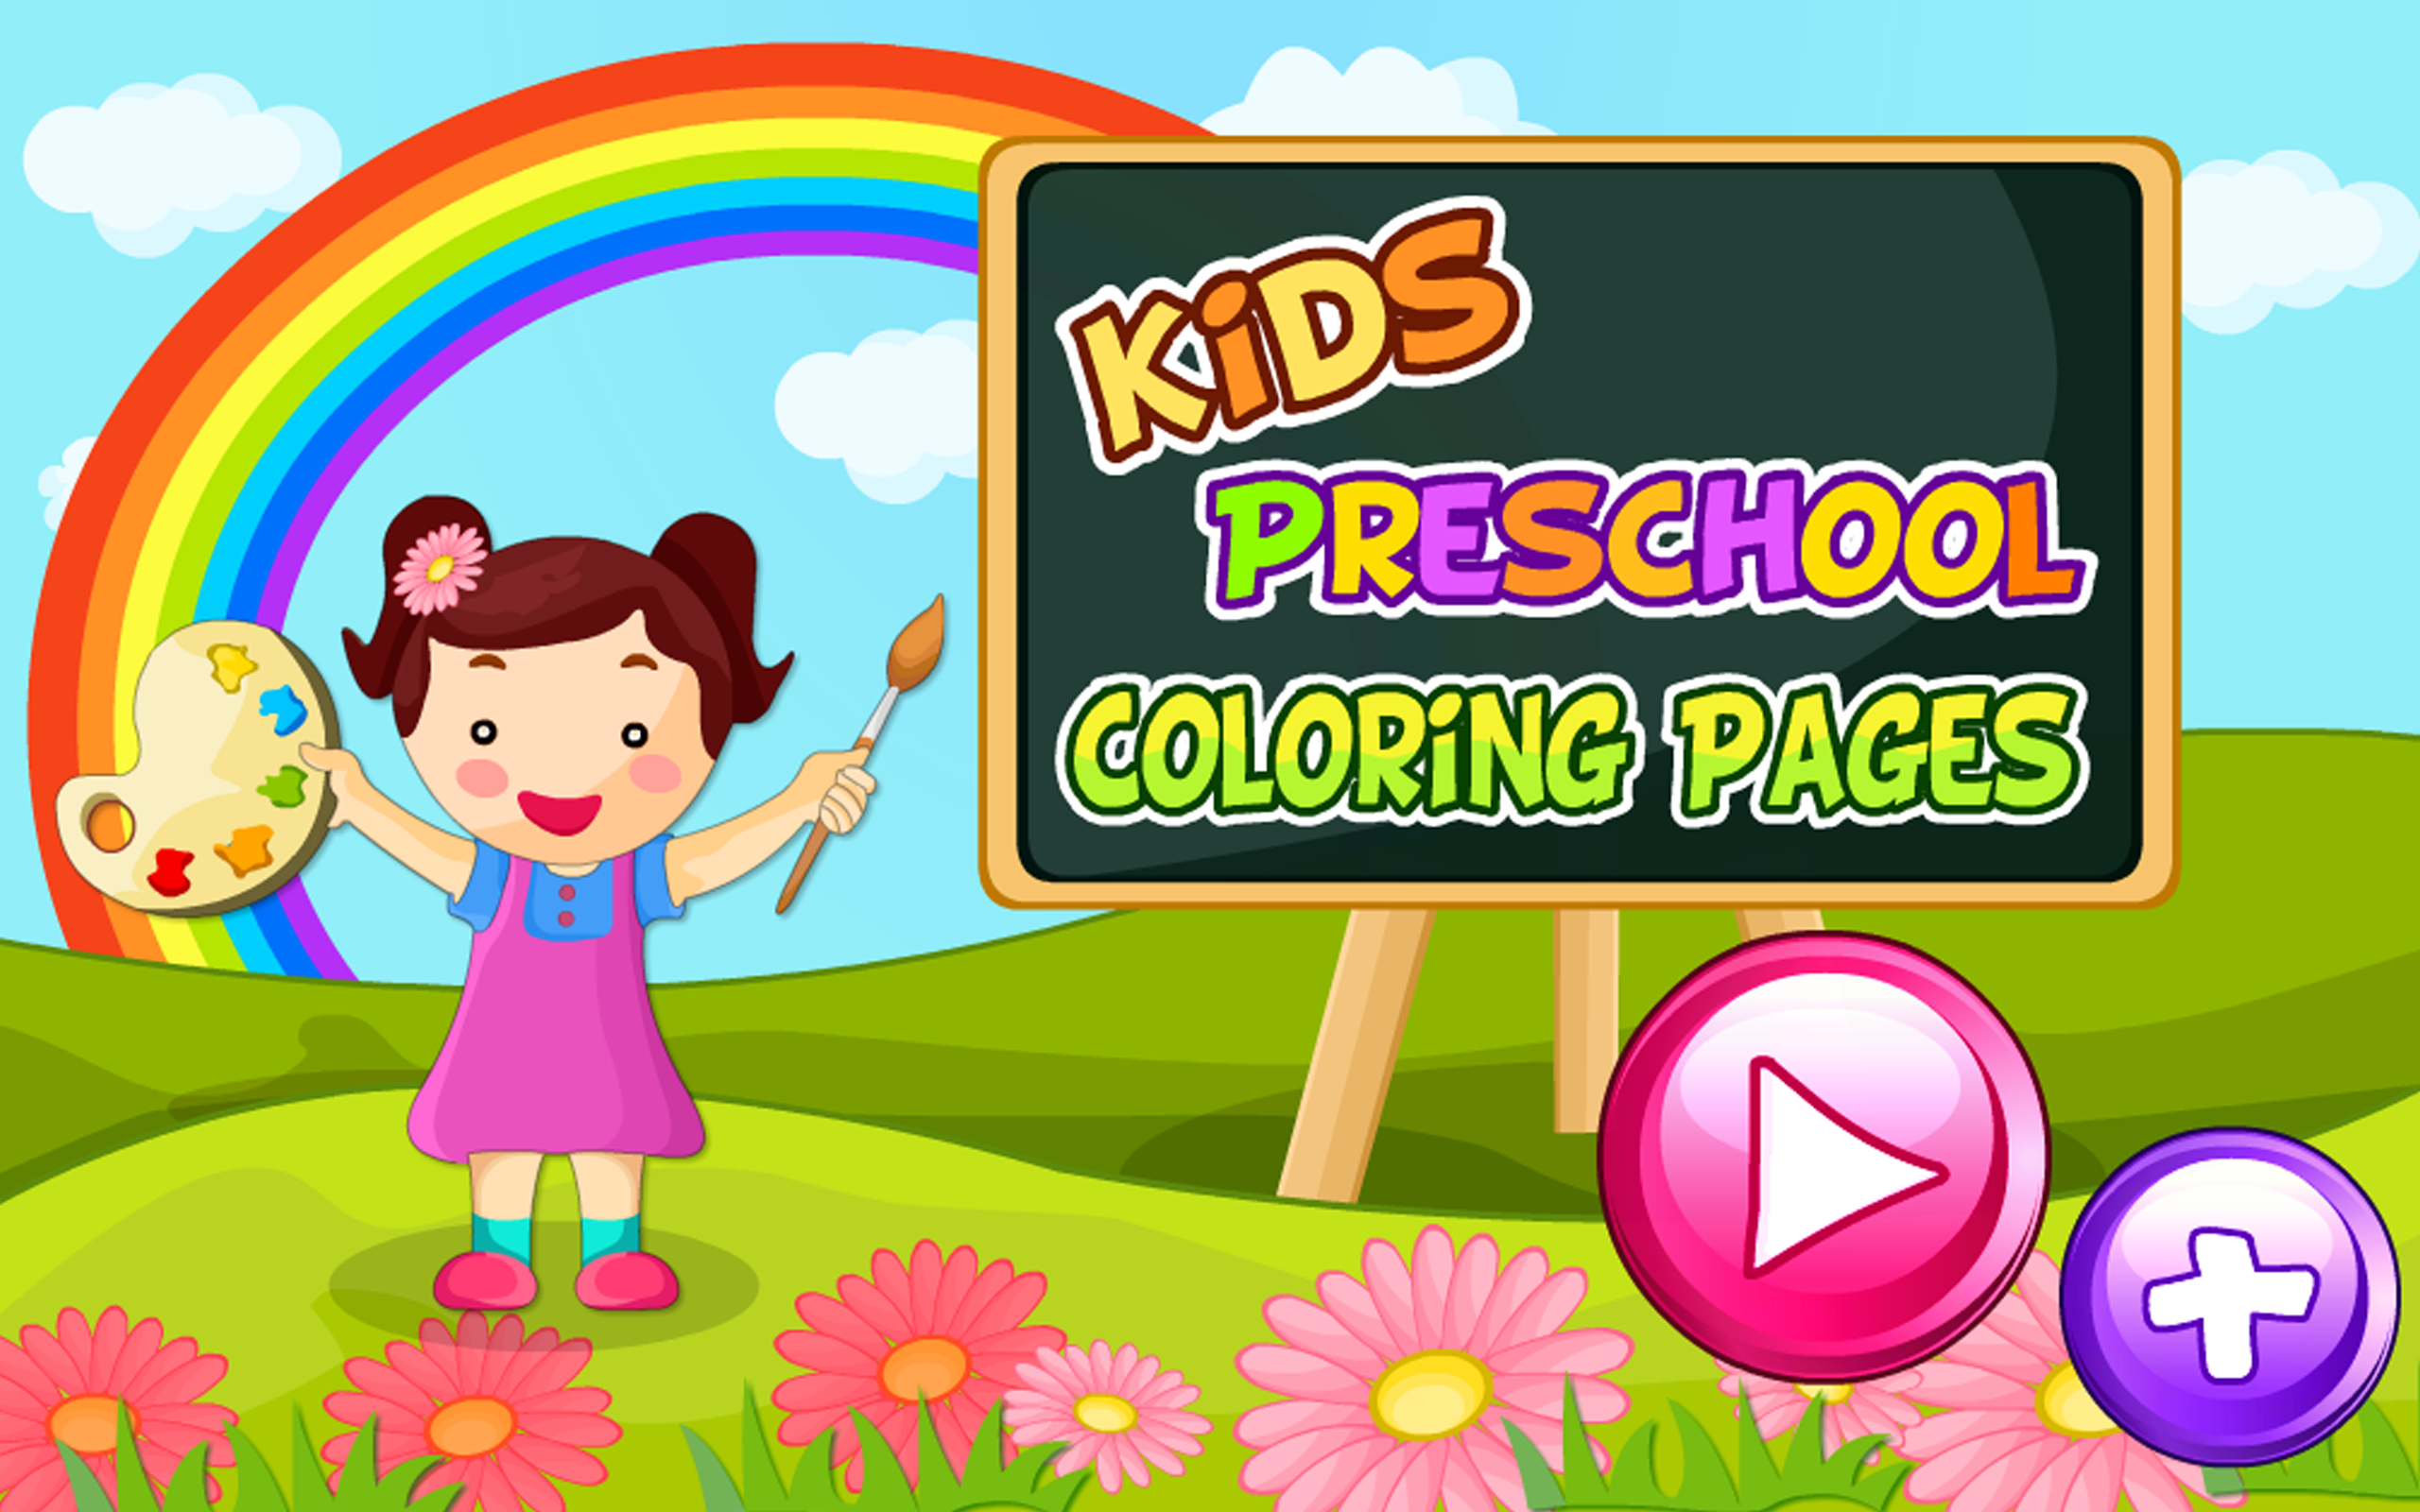 Amazon.com: Kids Preschool Coloring Pages: Appstore for Android